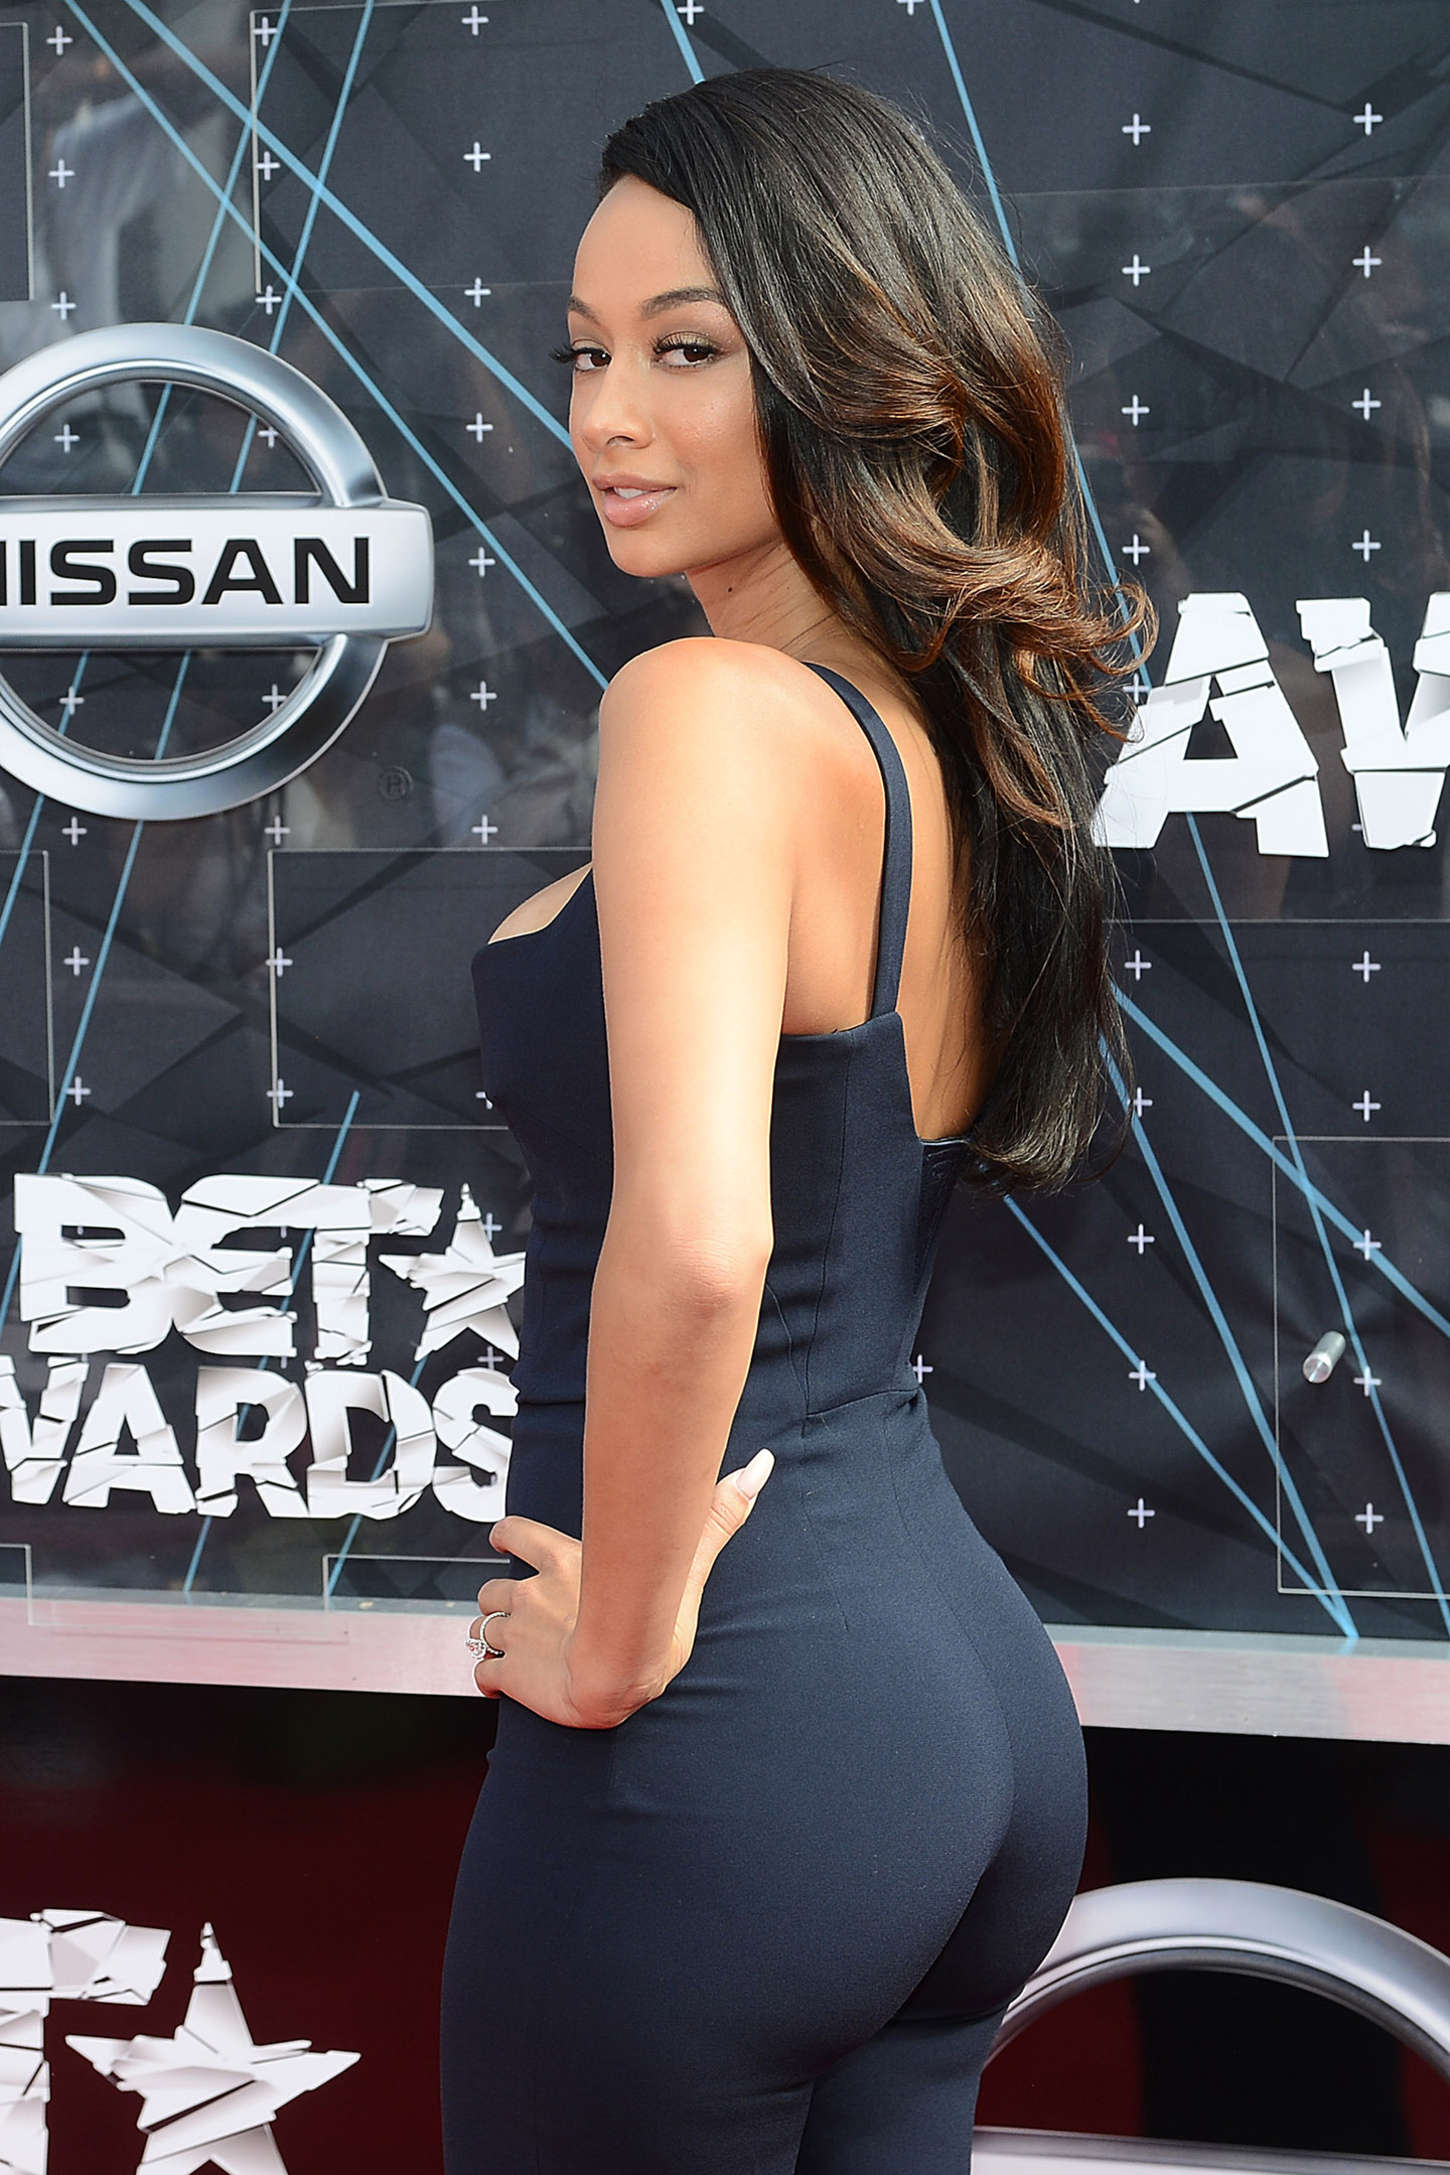 Pictures Draya Michele naked (55 photos), Ass, Paparazzi, Feet, butt 2006